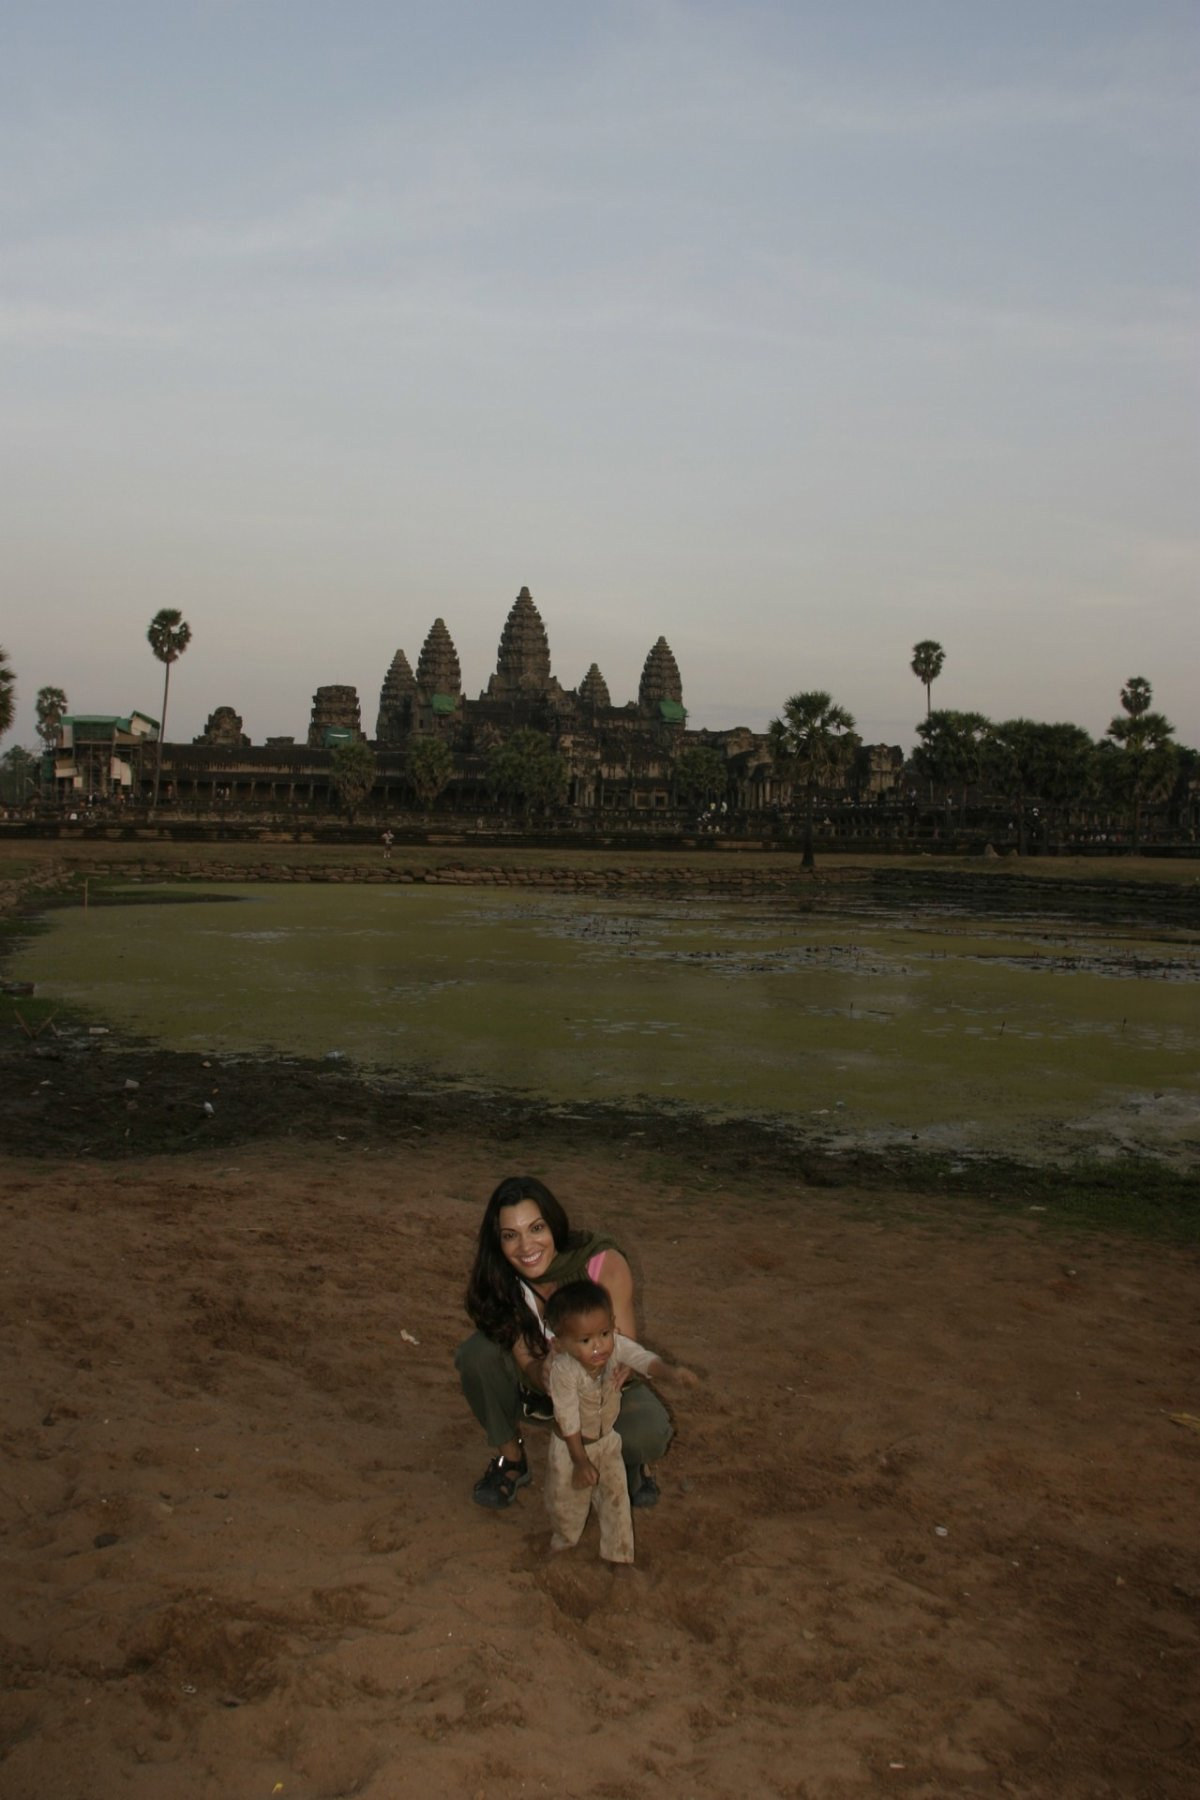 cat-with-baby-angkor-wat-temple10-23-2011